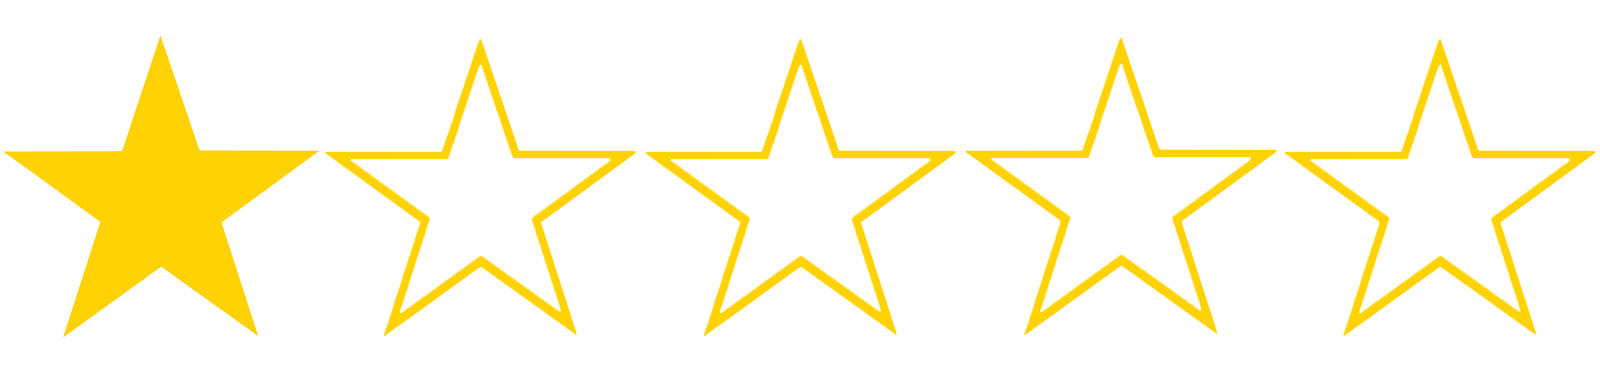 Image result for 1 star out of 5